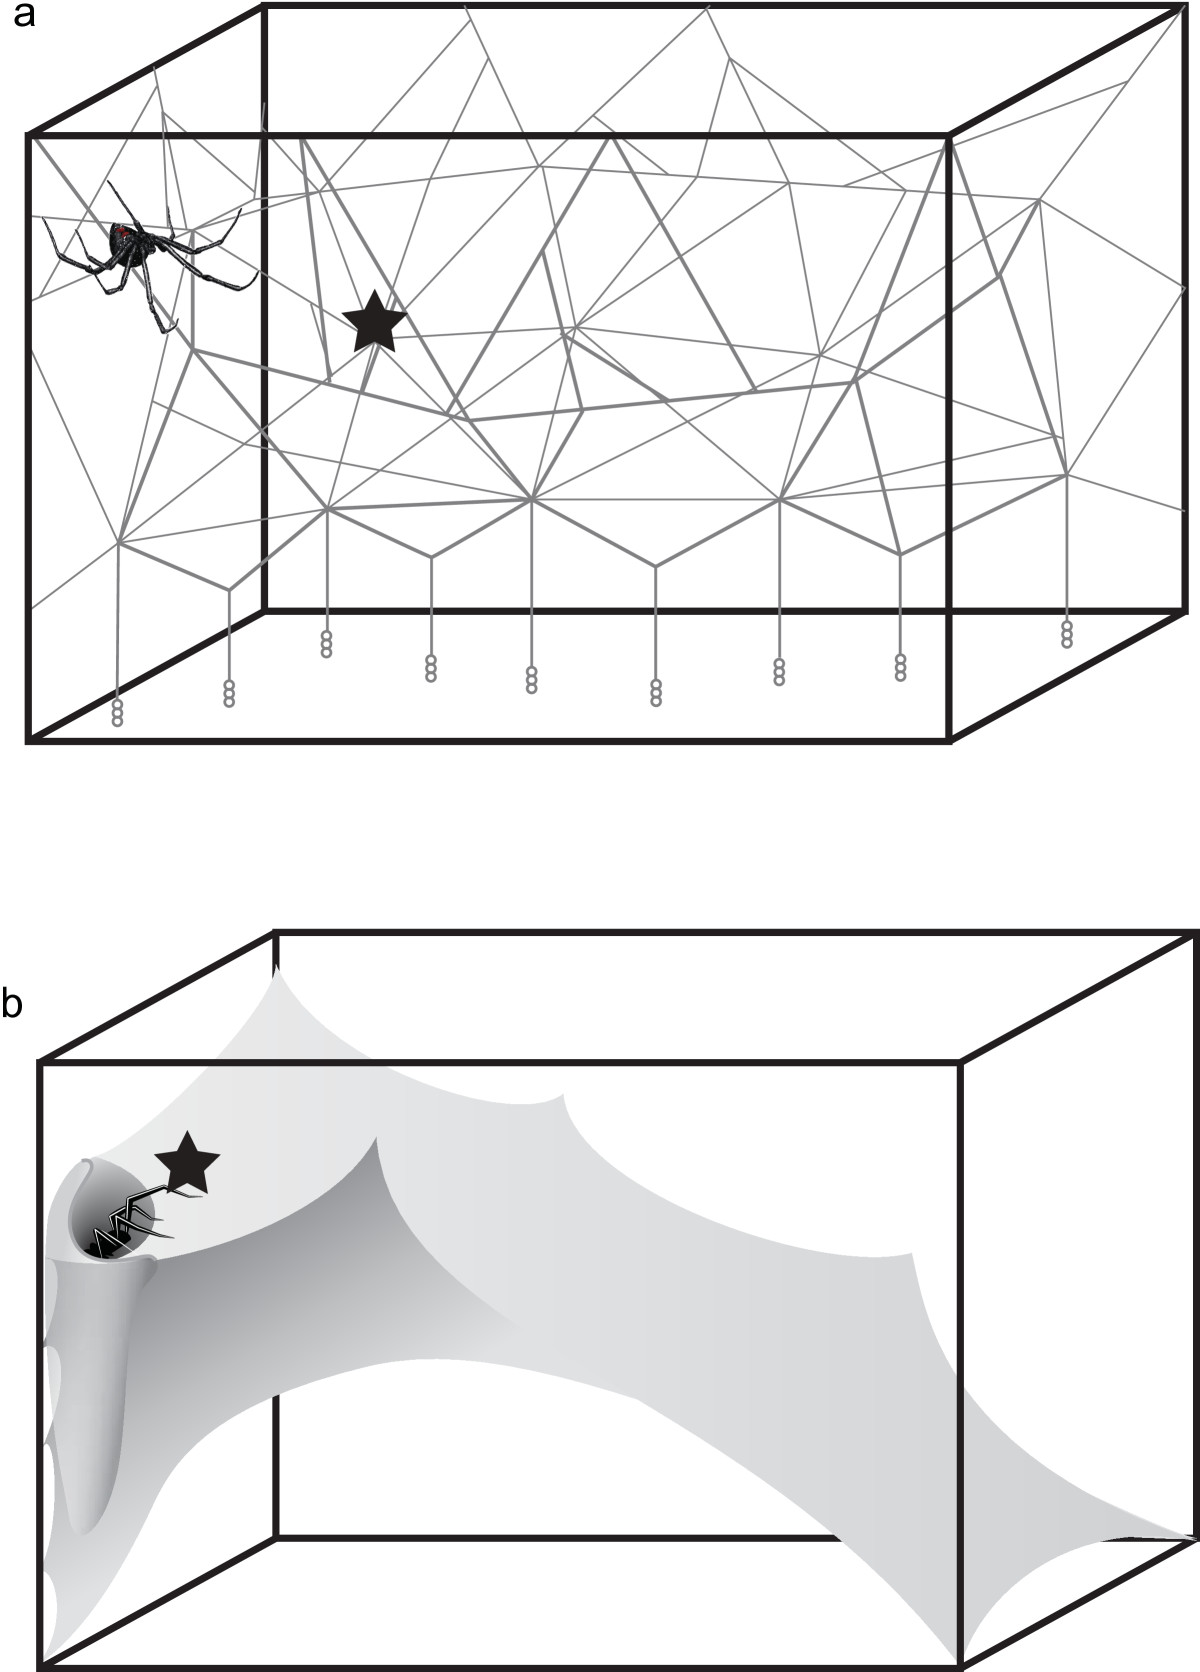 http://static-content.springer.com/image/art%3A10.1186%2F1742-9994-11-4/MediaObjects/12983_2013_Article_298_Fig1_HTML.jpg